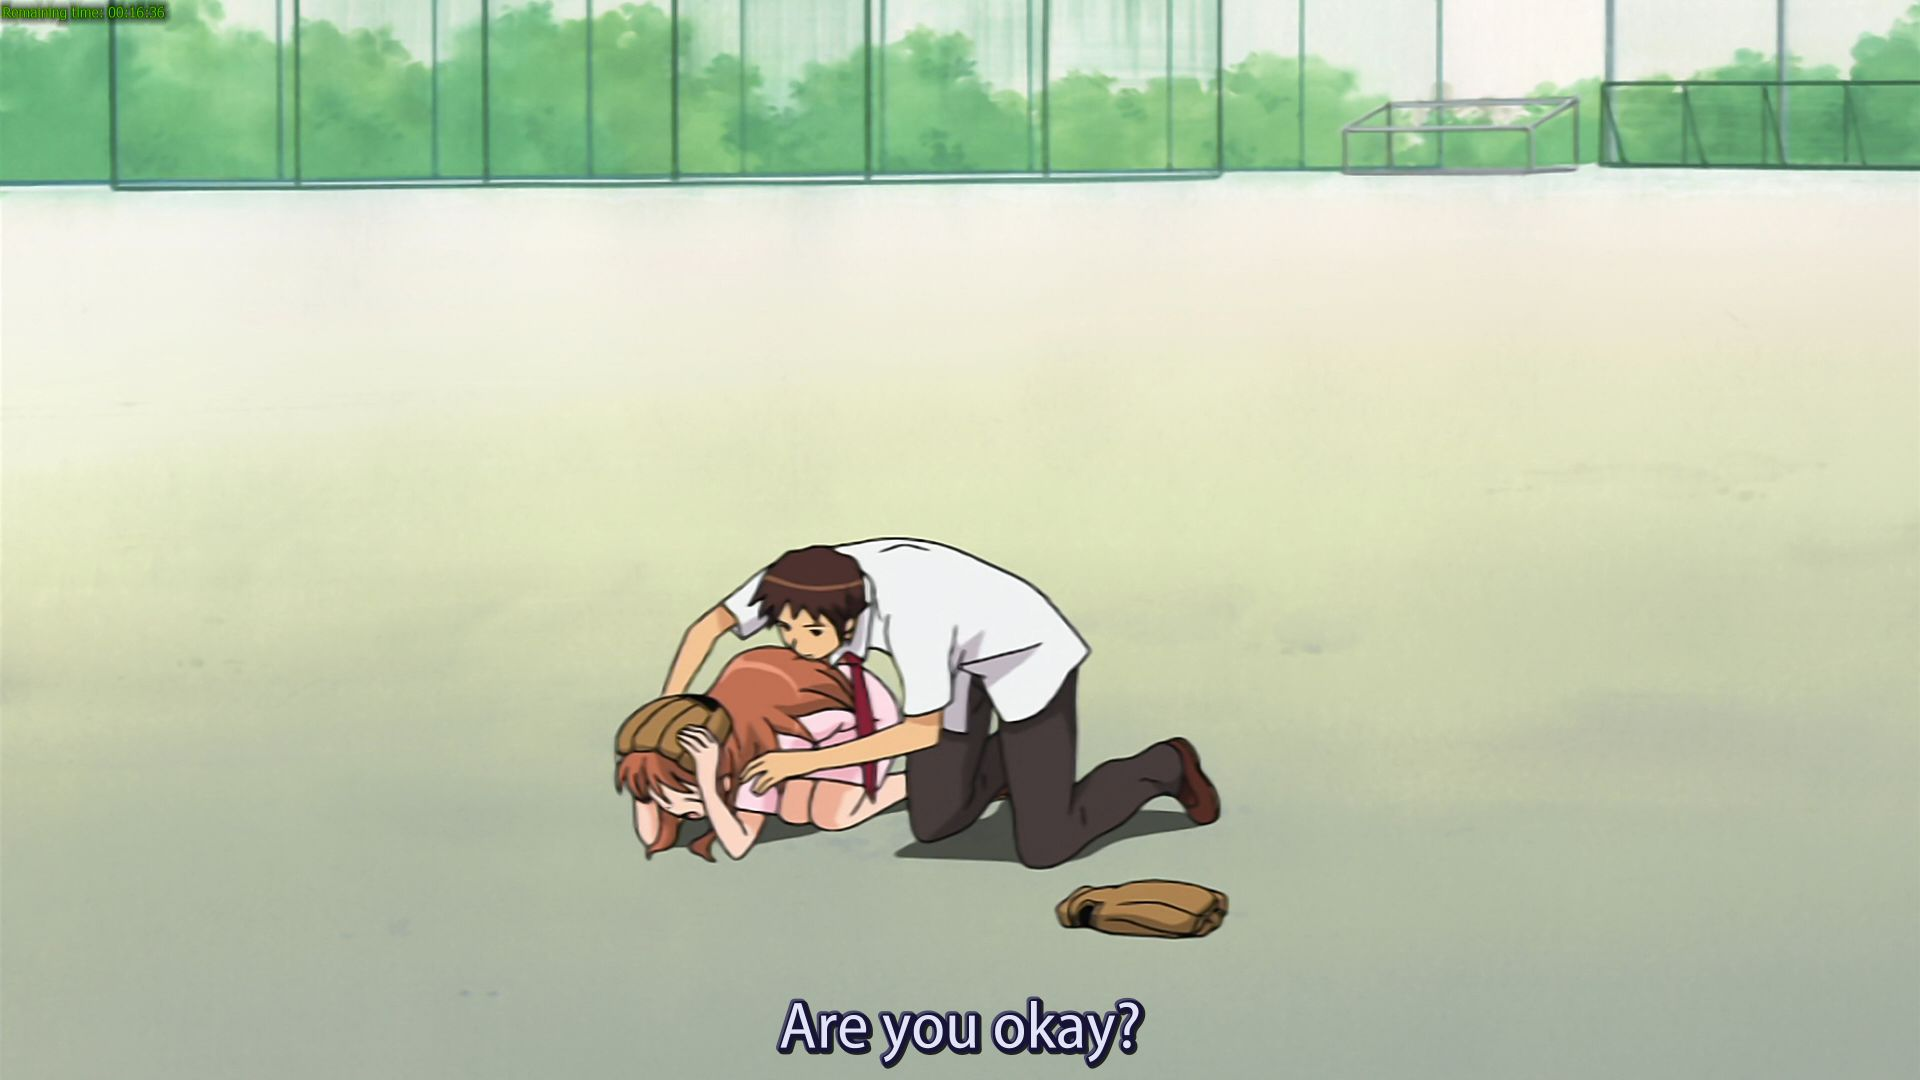 The Blu-ray upscales of the first season materials is truly atrocious. Between this anime, AIR and Lucky Star BD releases, Kyoto Animation makes JC Staff looks good.